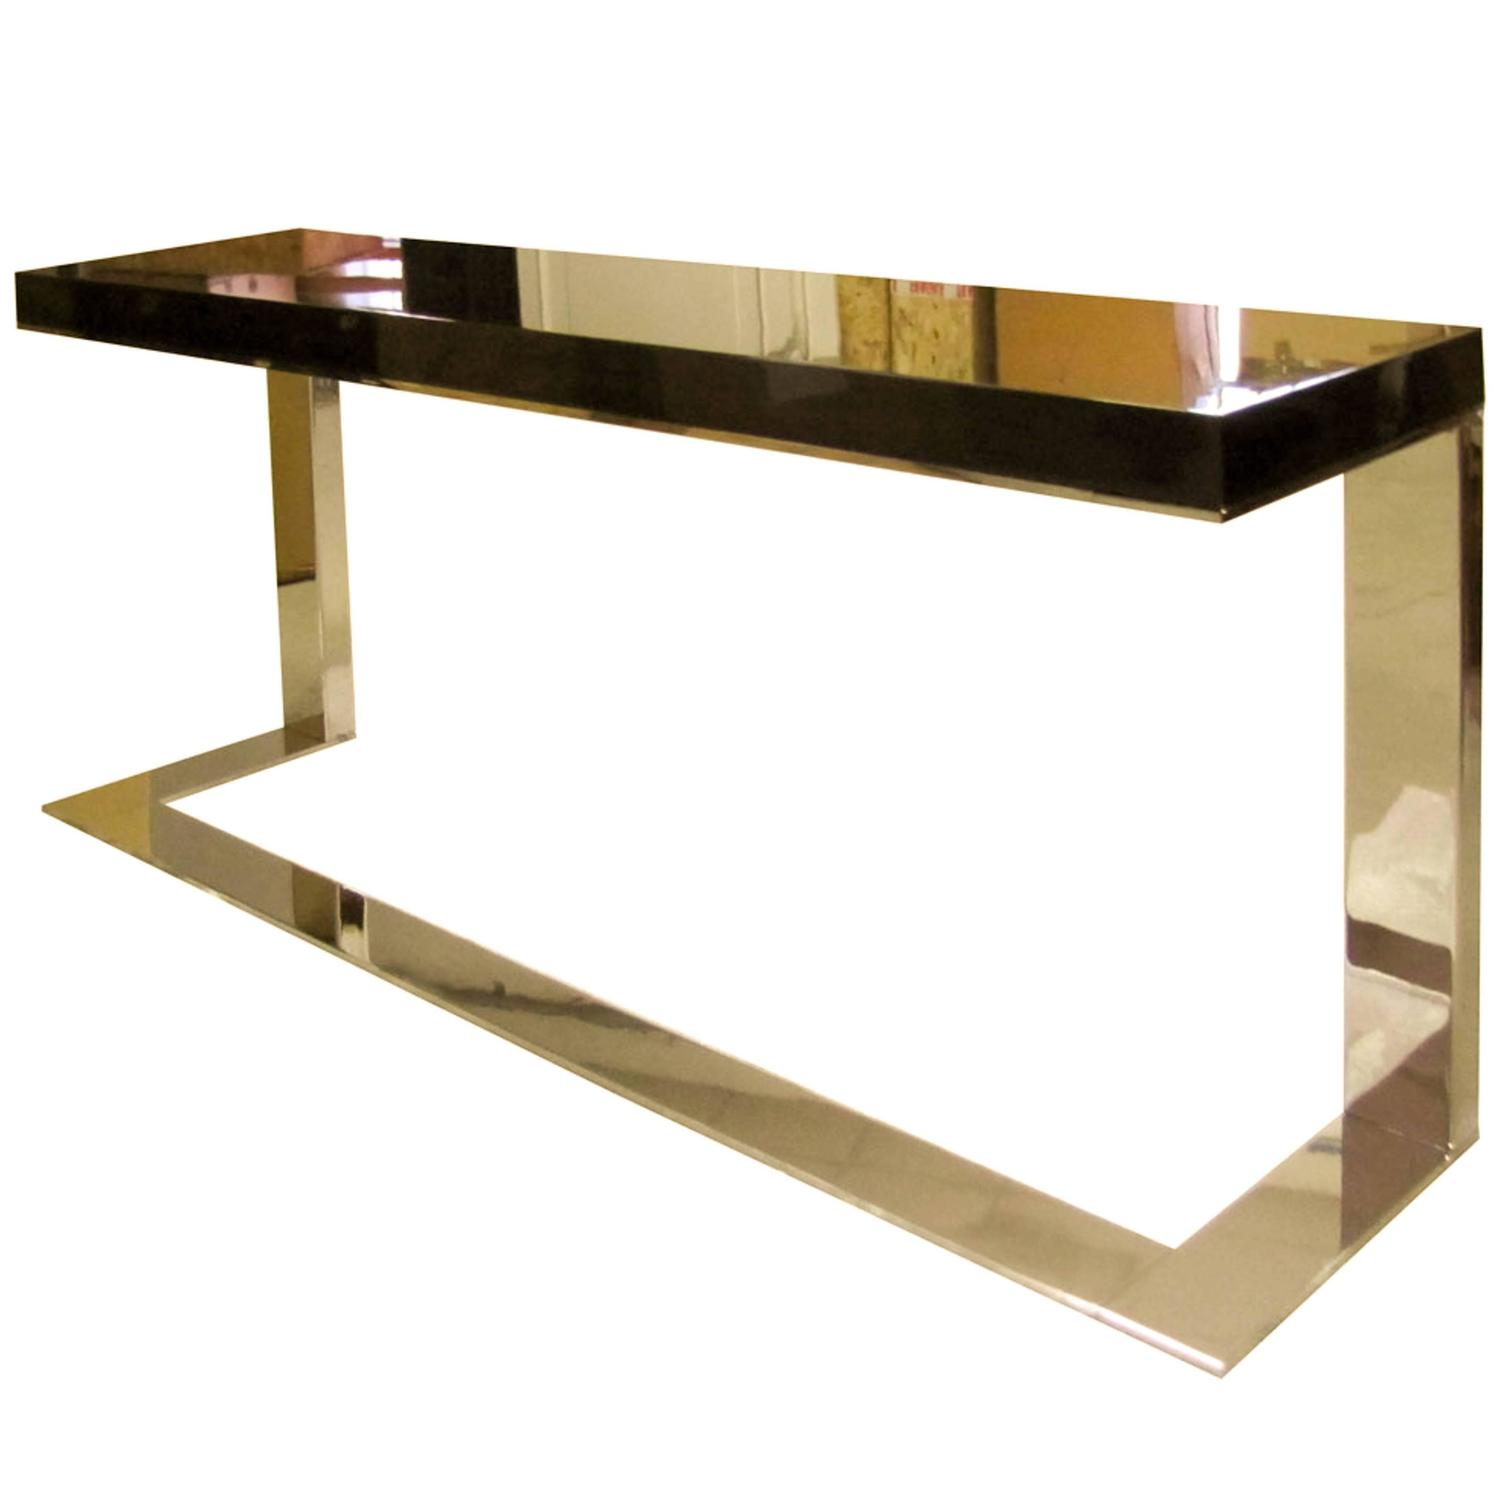 Italian modern ebony timber and brass kelly console table by dom italian modern ebony timber and brass kelly console table by dom edizioni for sale at 1stdibs geotapseo Image collections